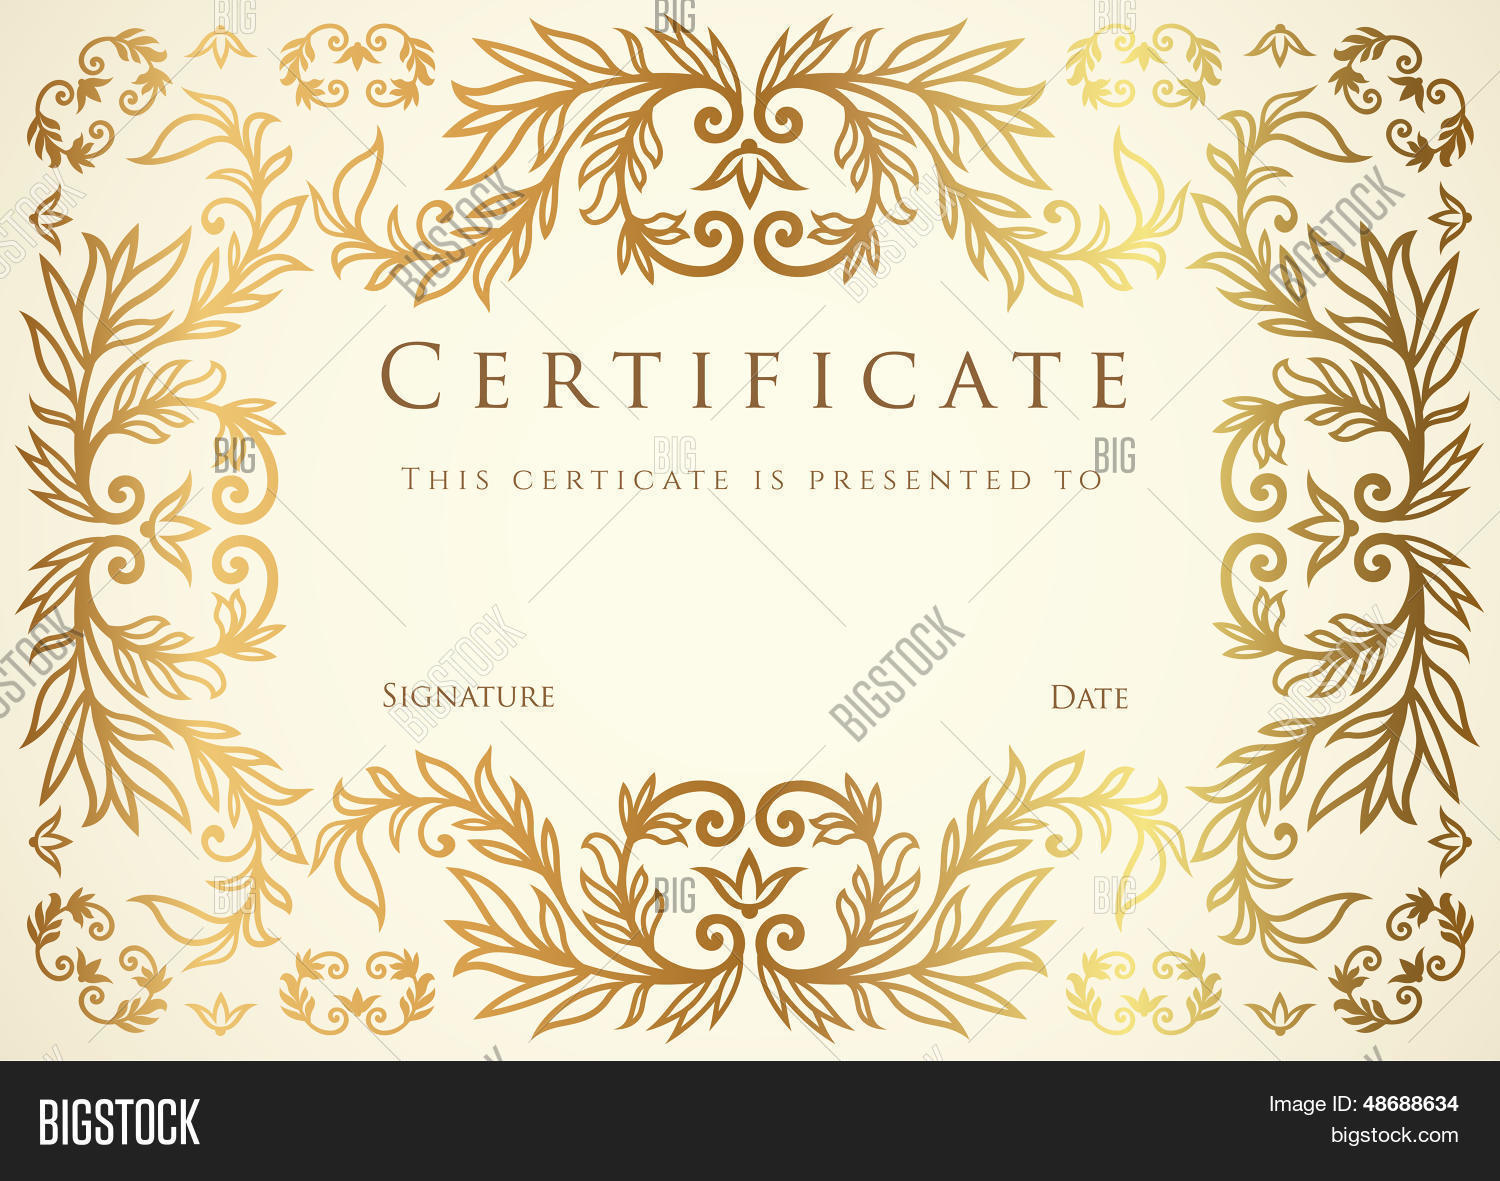 Certificate diploma template vector photo bigstock certificate diploma template with floral pattern tracery yadclub Choice Image